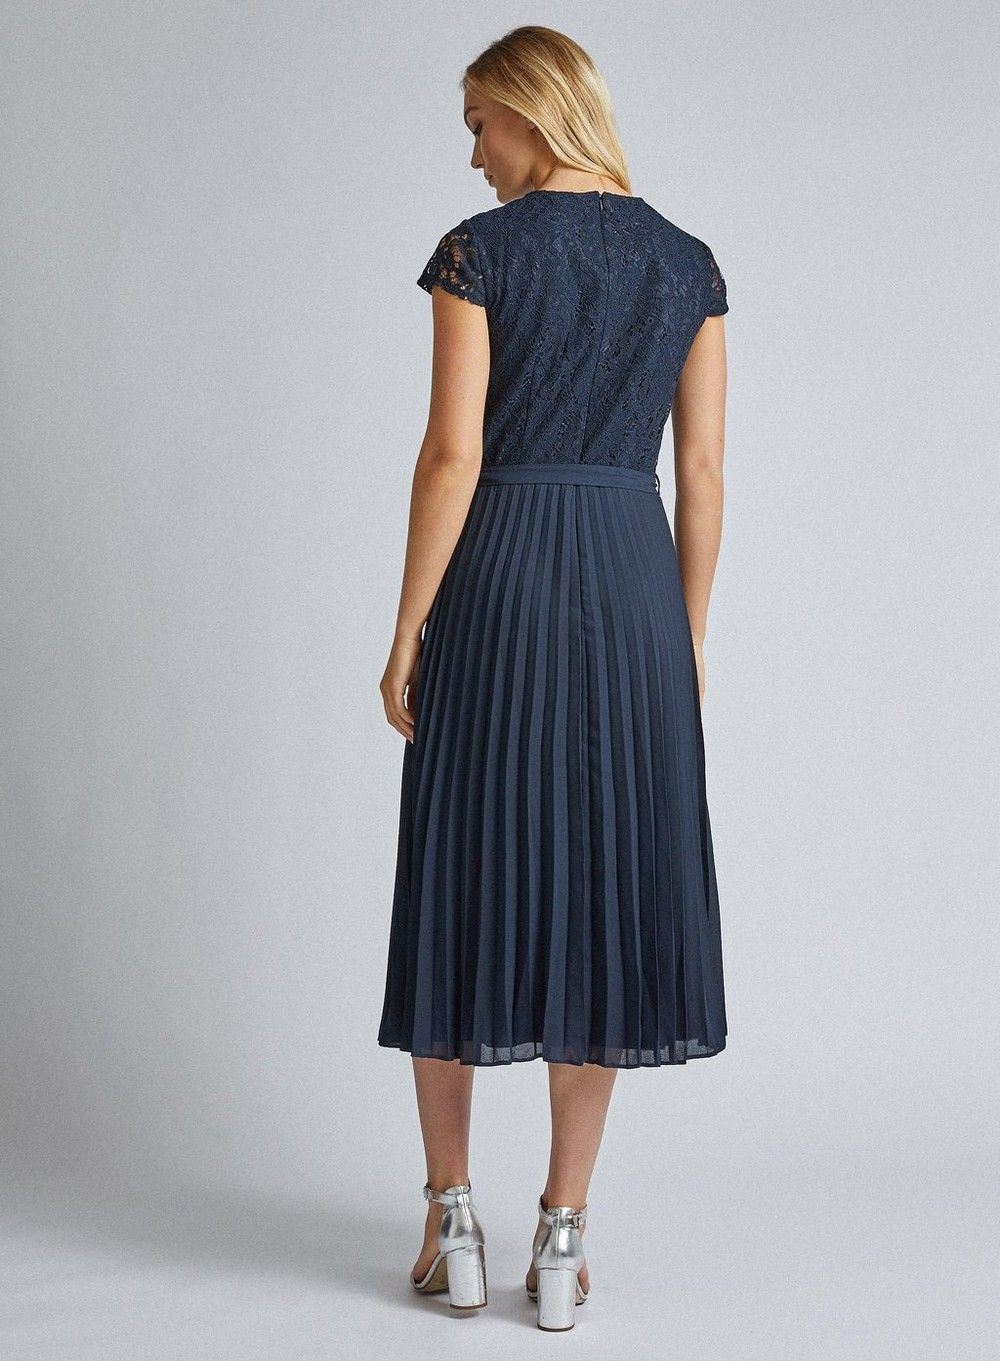 Dorothy Perkins Womens Tall Navy Blue Lace Pleated Dress Short Sleeve Round Neck